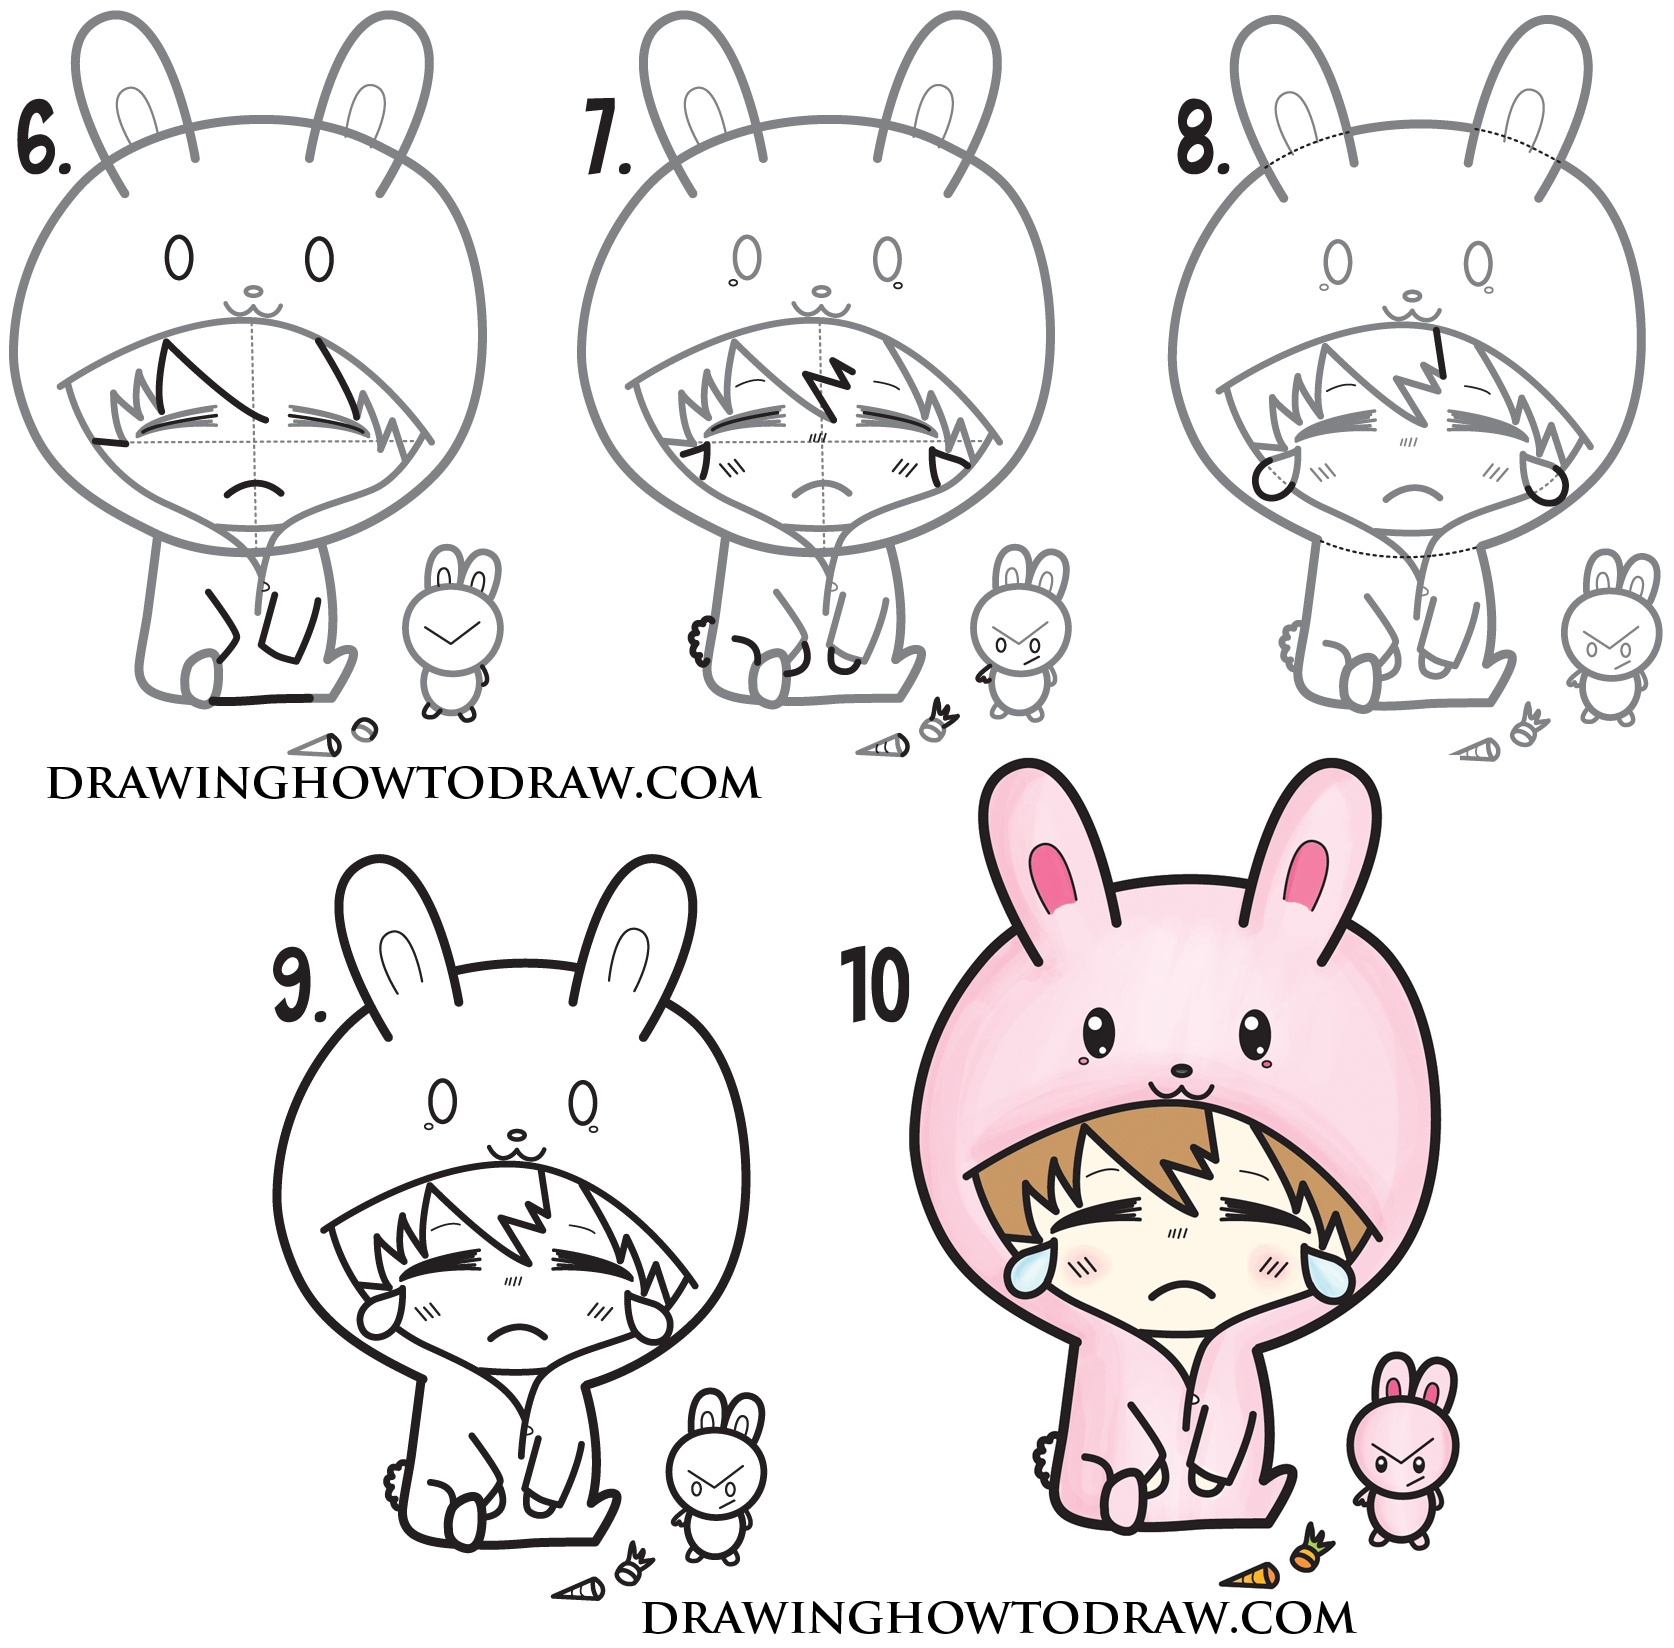 how to draw a cute chibi character in bunny rabbit onesie pajamas costume easy steps drawing - Simple Drawing For Kid